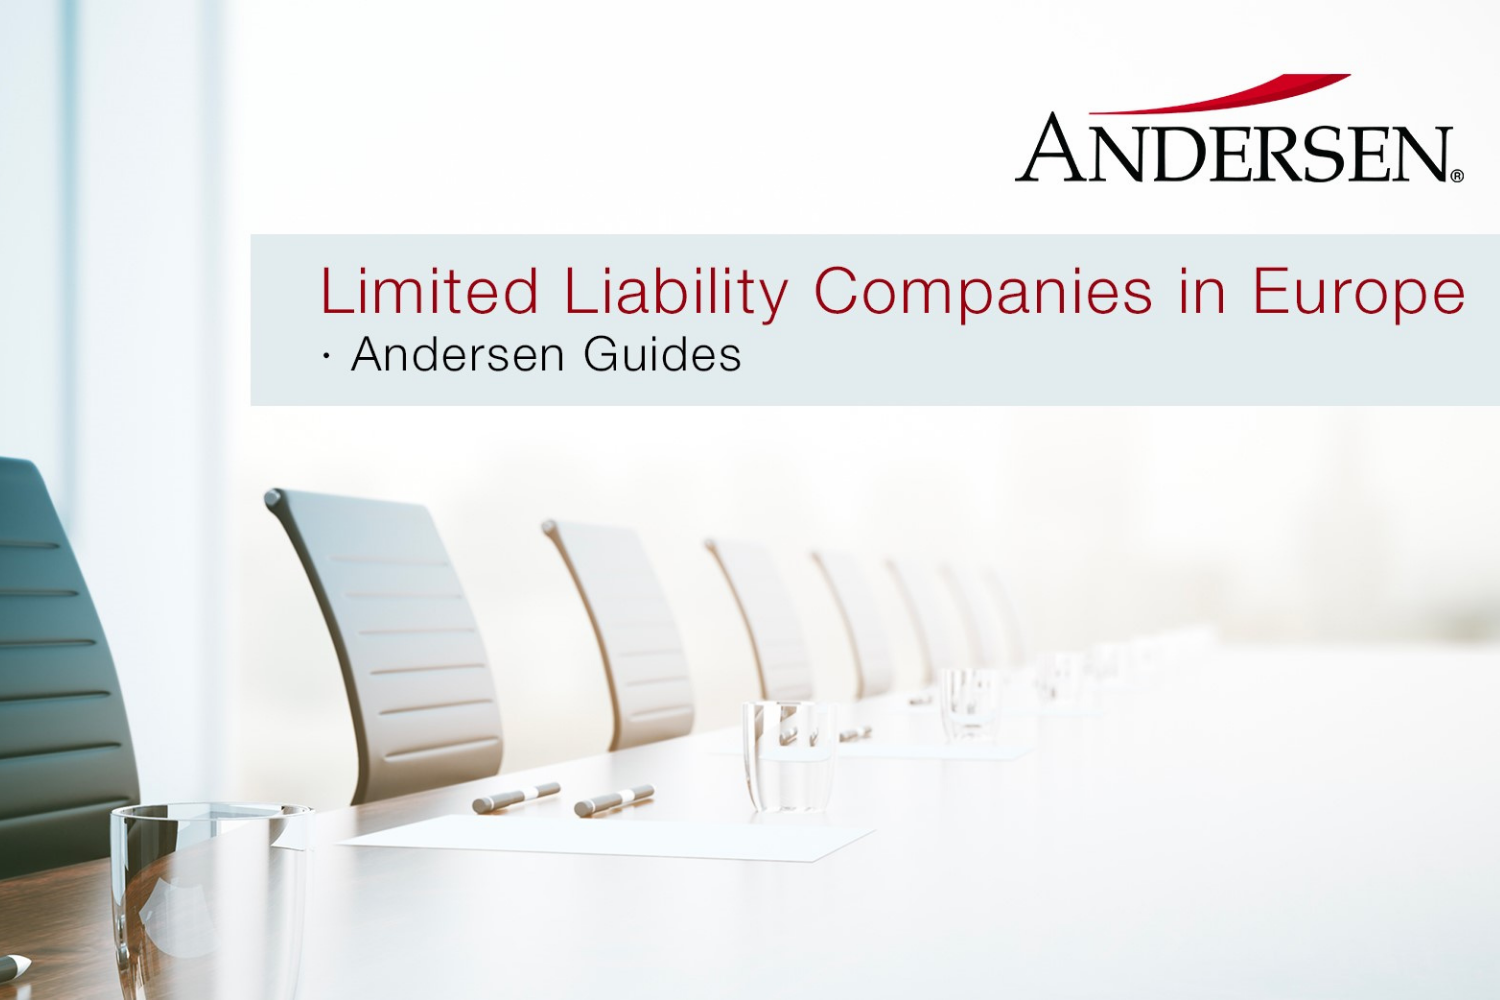 Andersen Guides: Limited Liability Companies in Europe